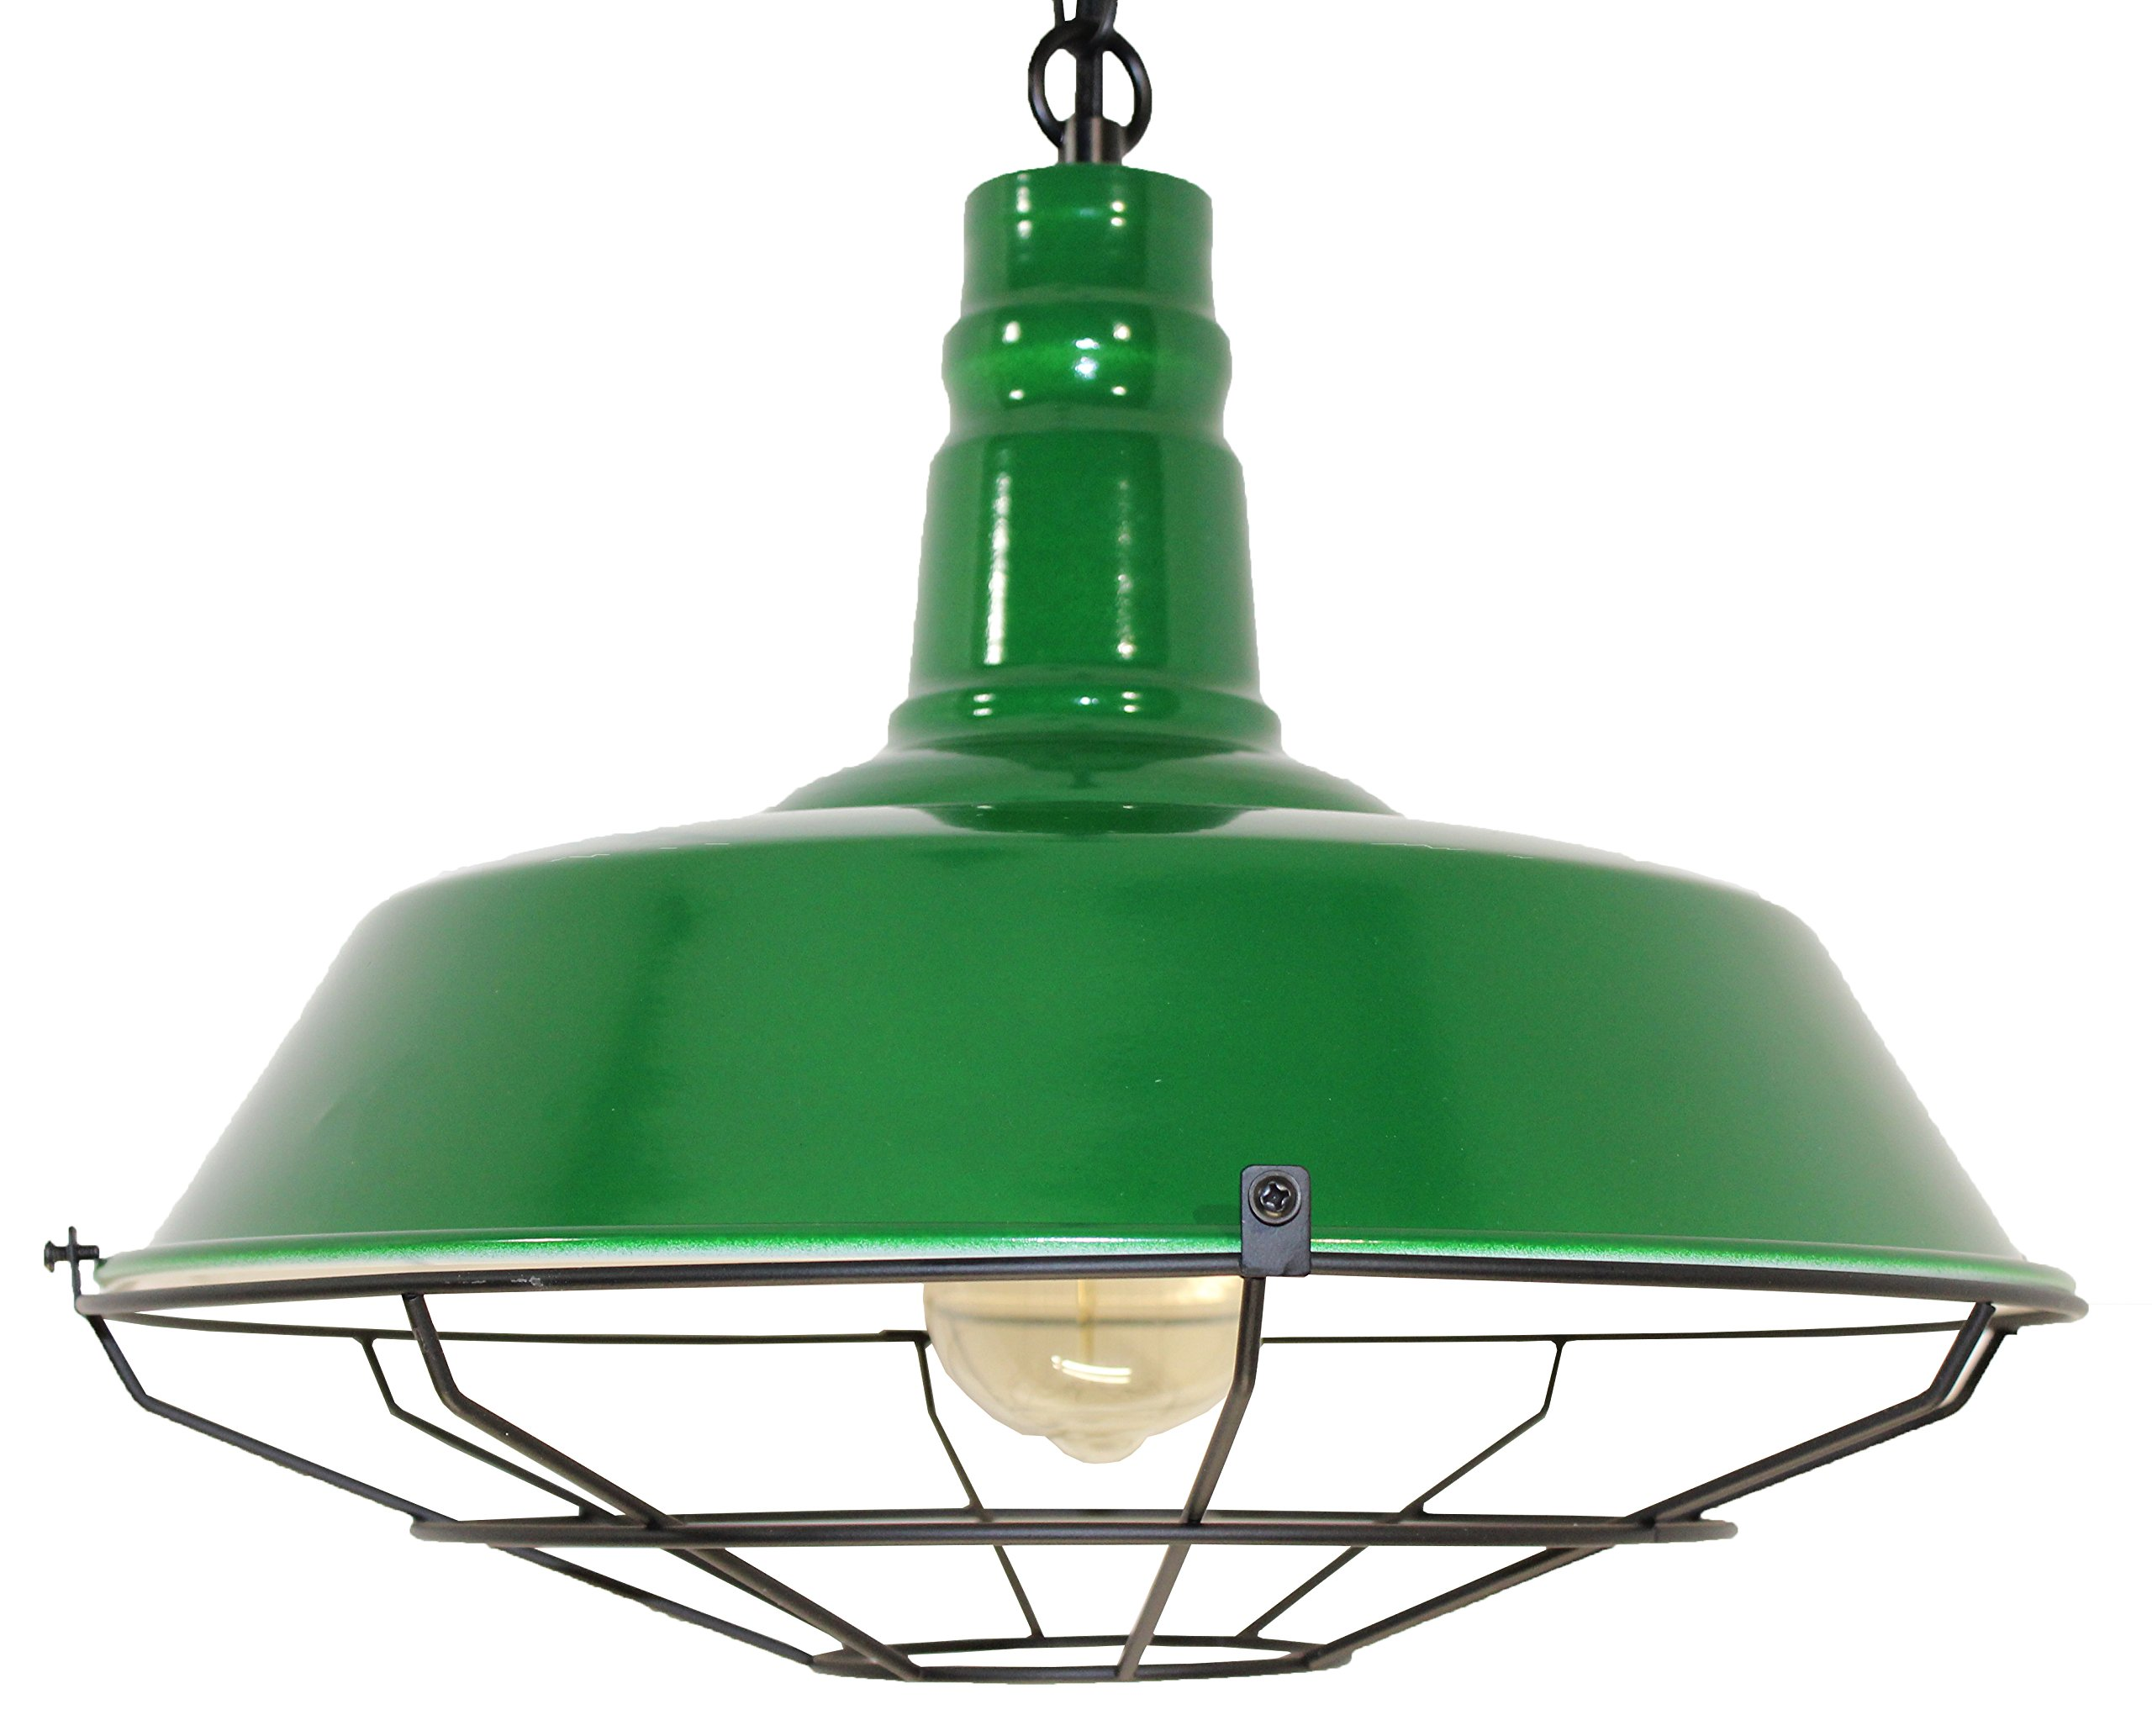 Vintage Industrial Pendant Light - Retro Style Light Fixture - Great Chic Lighting for Kitchen Islands, Dining Room, Living Room, Family Room, Bar, Restaurant, Lounge, Rustic Farmhouse Decor (Green)